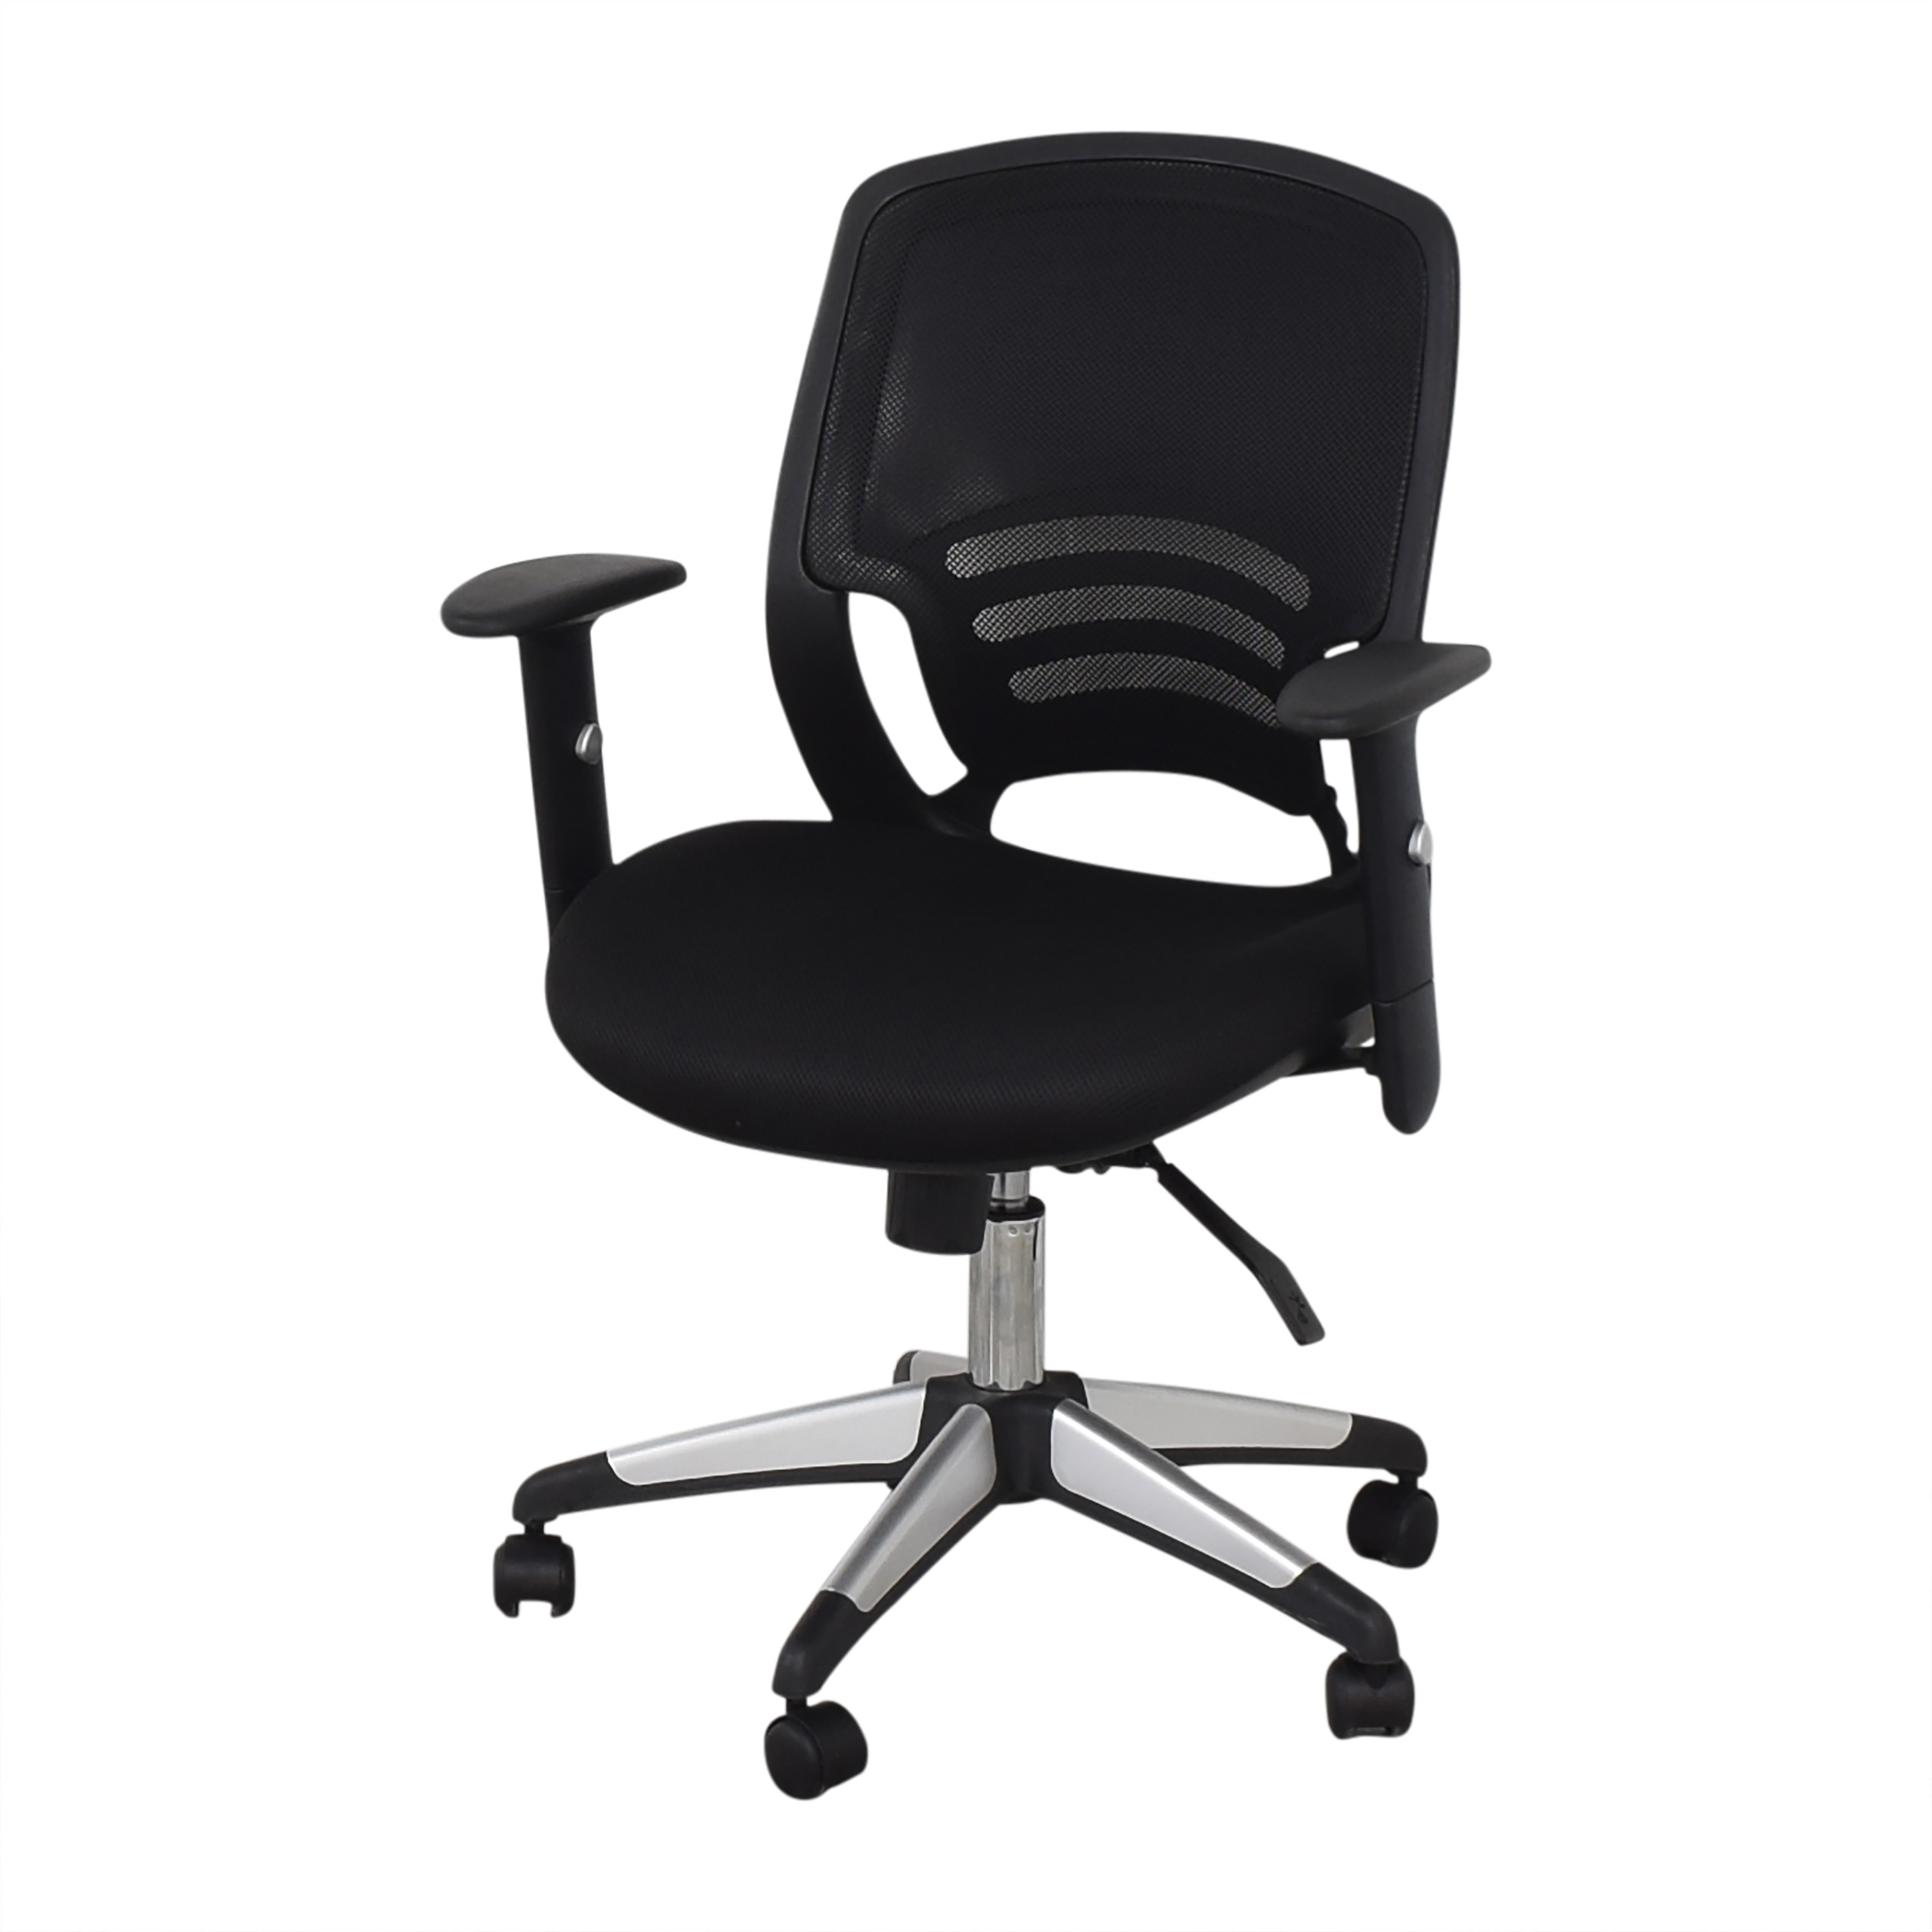 Offices to Go Offices to Go Mid Back Mesh Back Synchro-Tilter Office Chair  nj